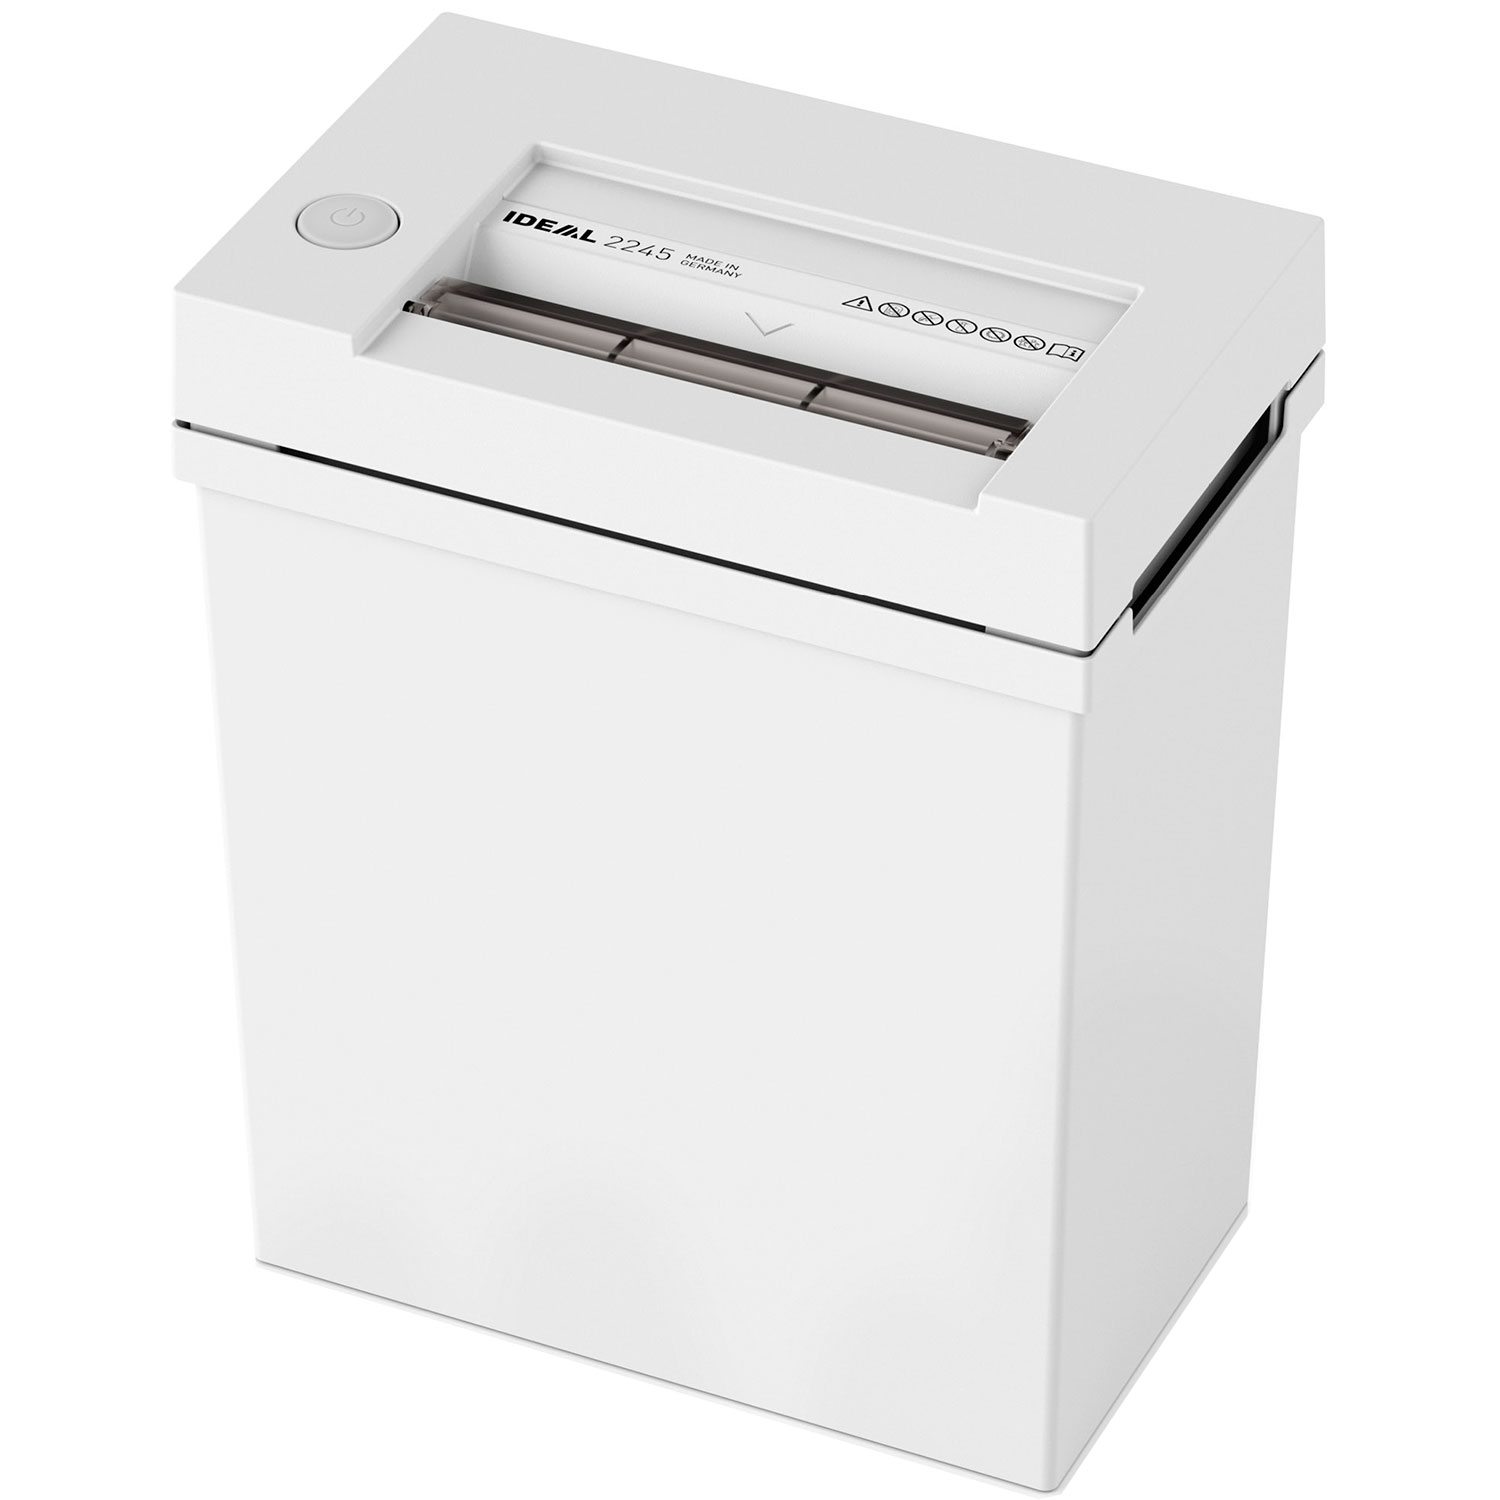 IDEAL 2245 4mm Strip Cut Deskside Shredder